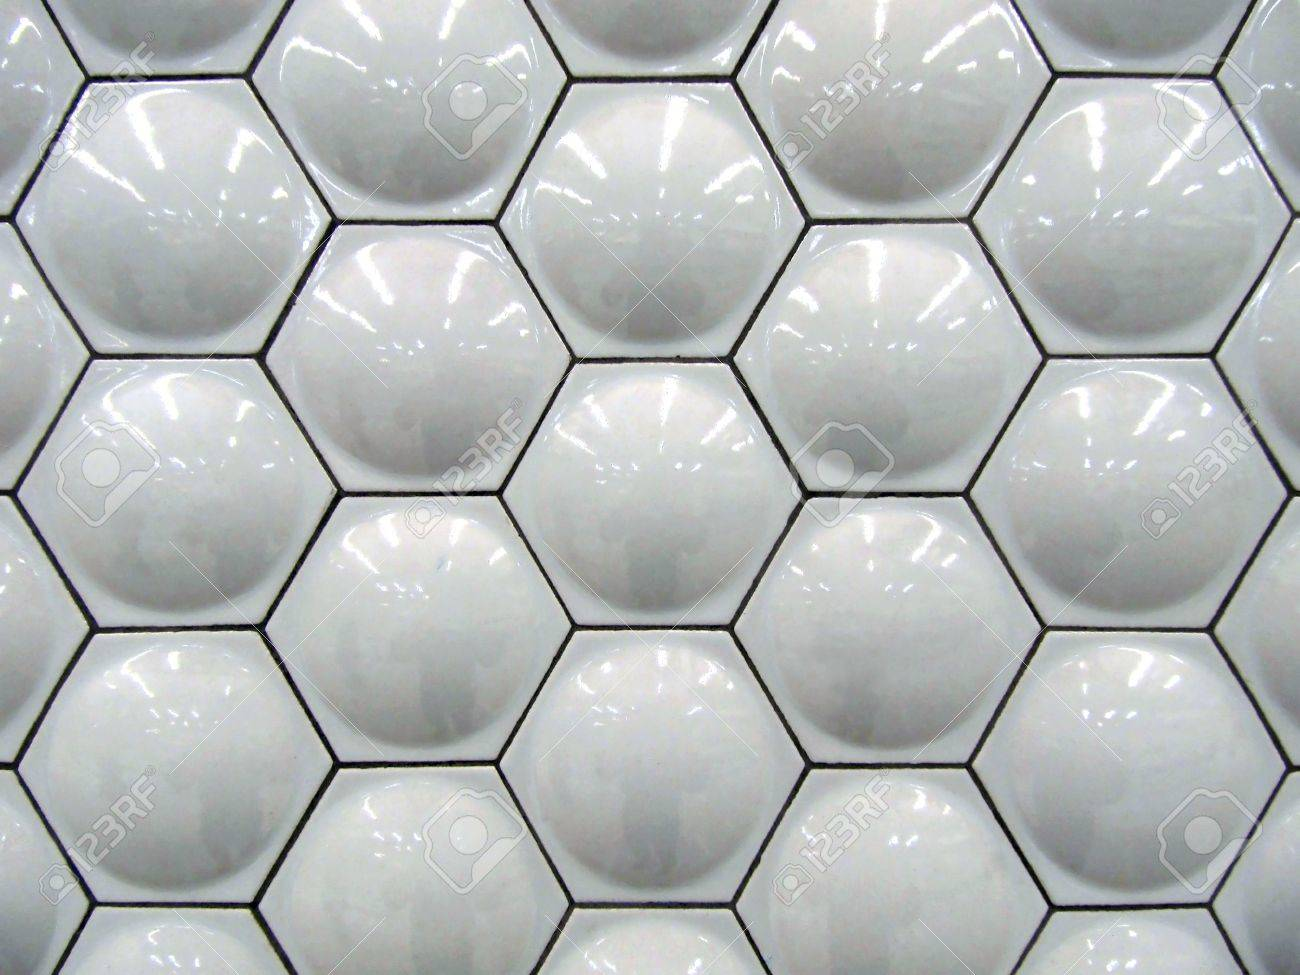 White Hexagon Bubble Shaped Ceramic Wall Tiles In Background Stock